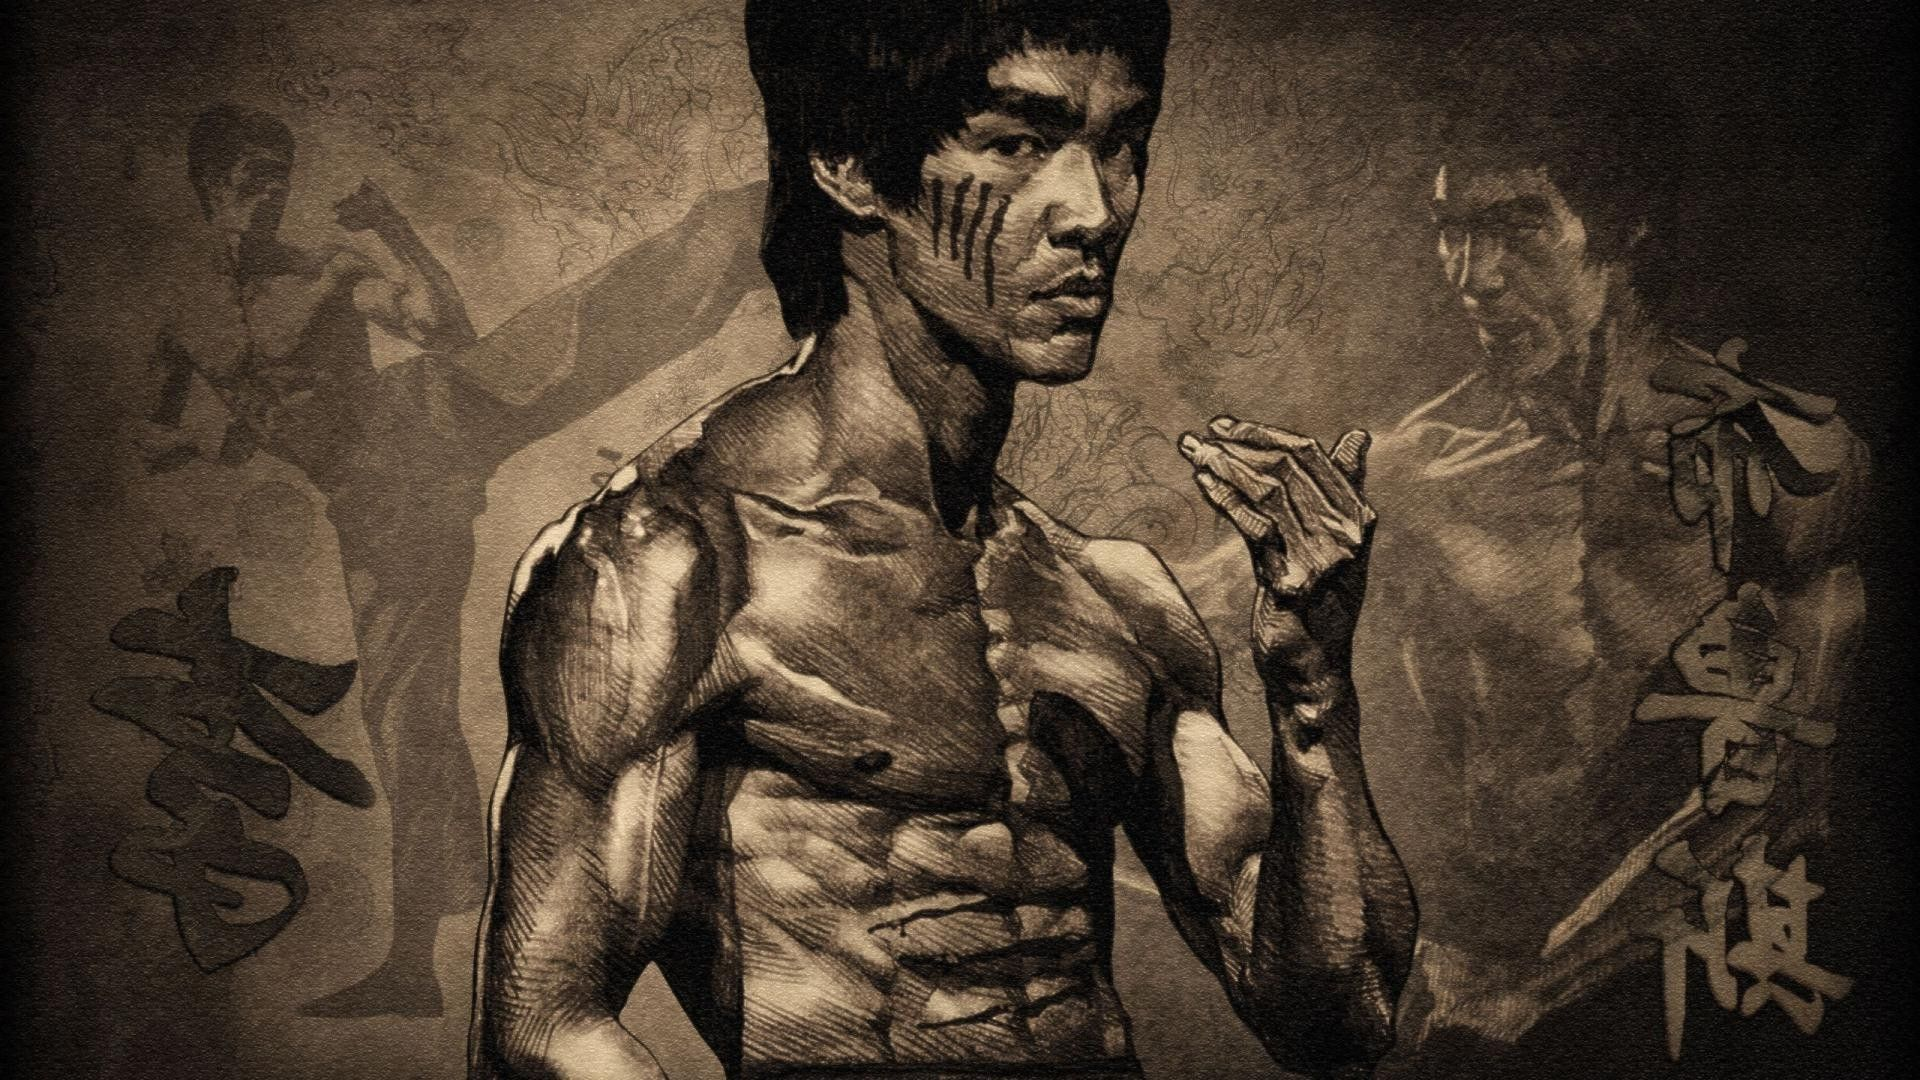 1920x1080 - Bruce Lee Wallpapers 28